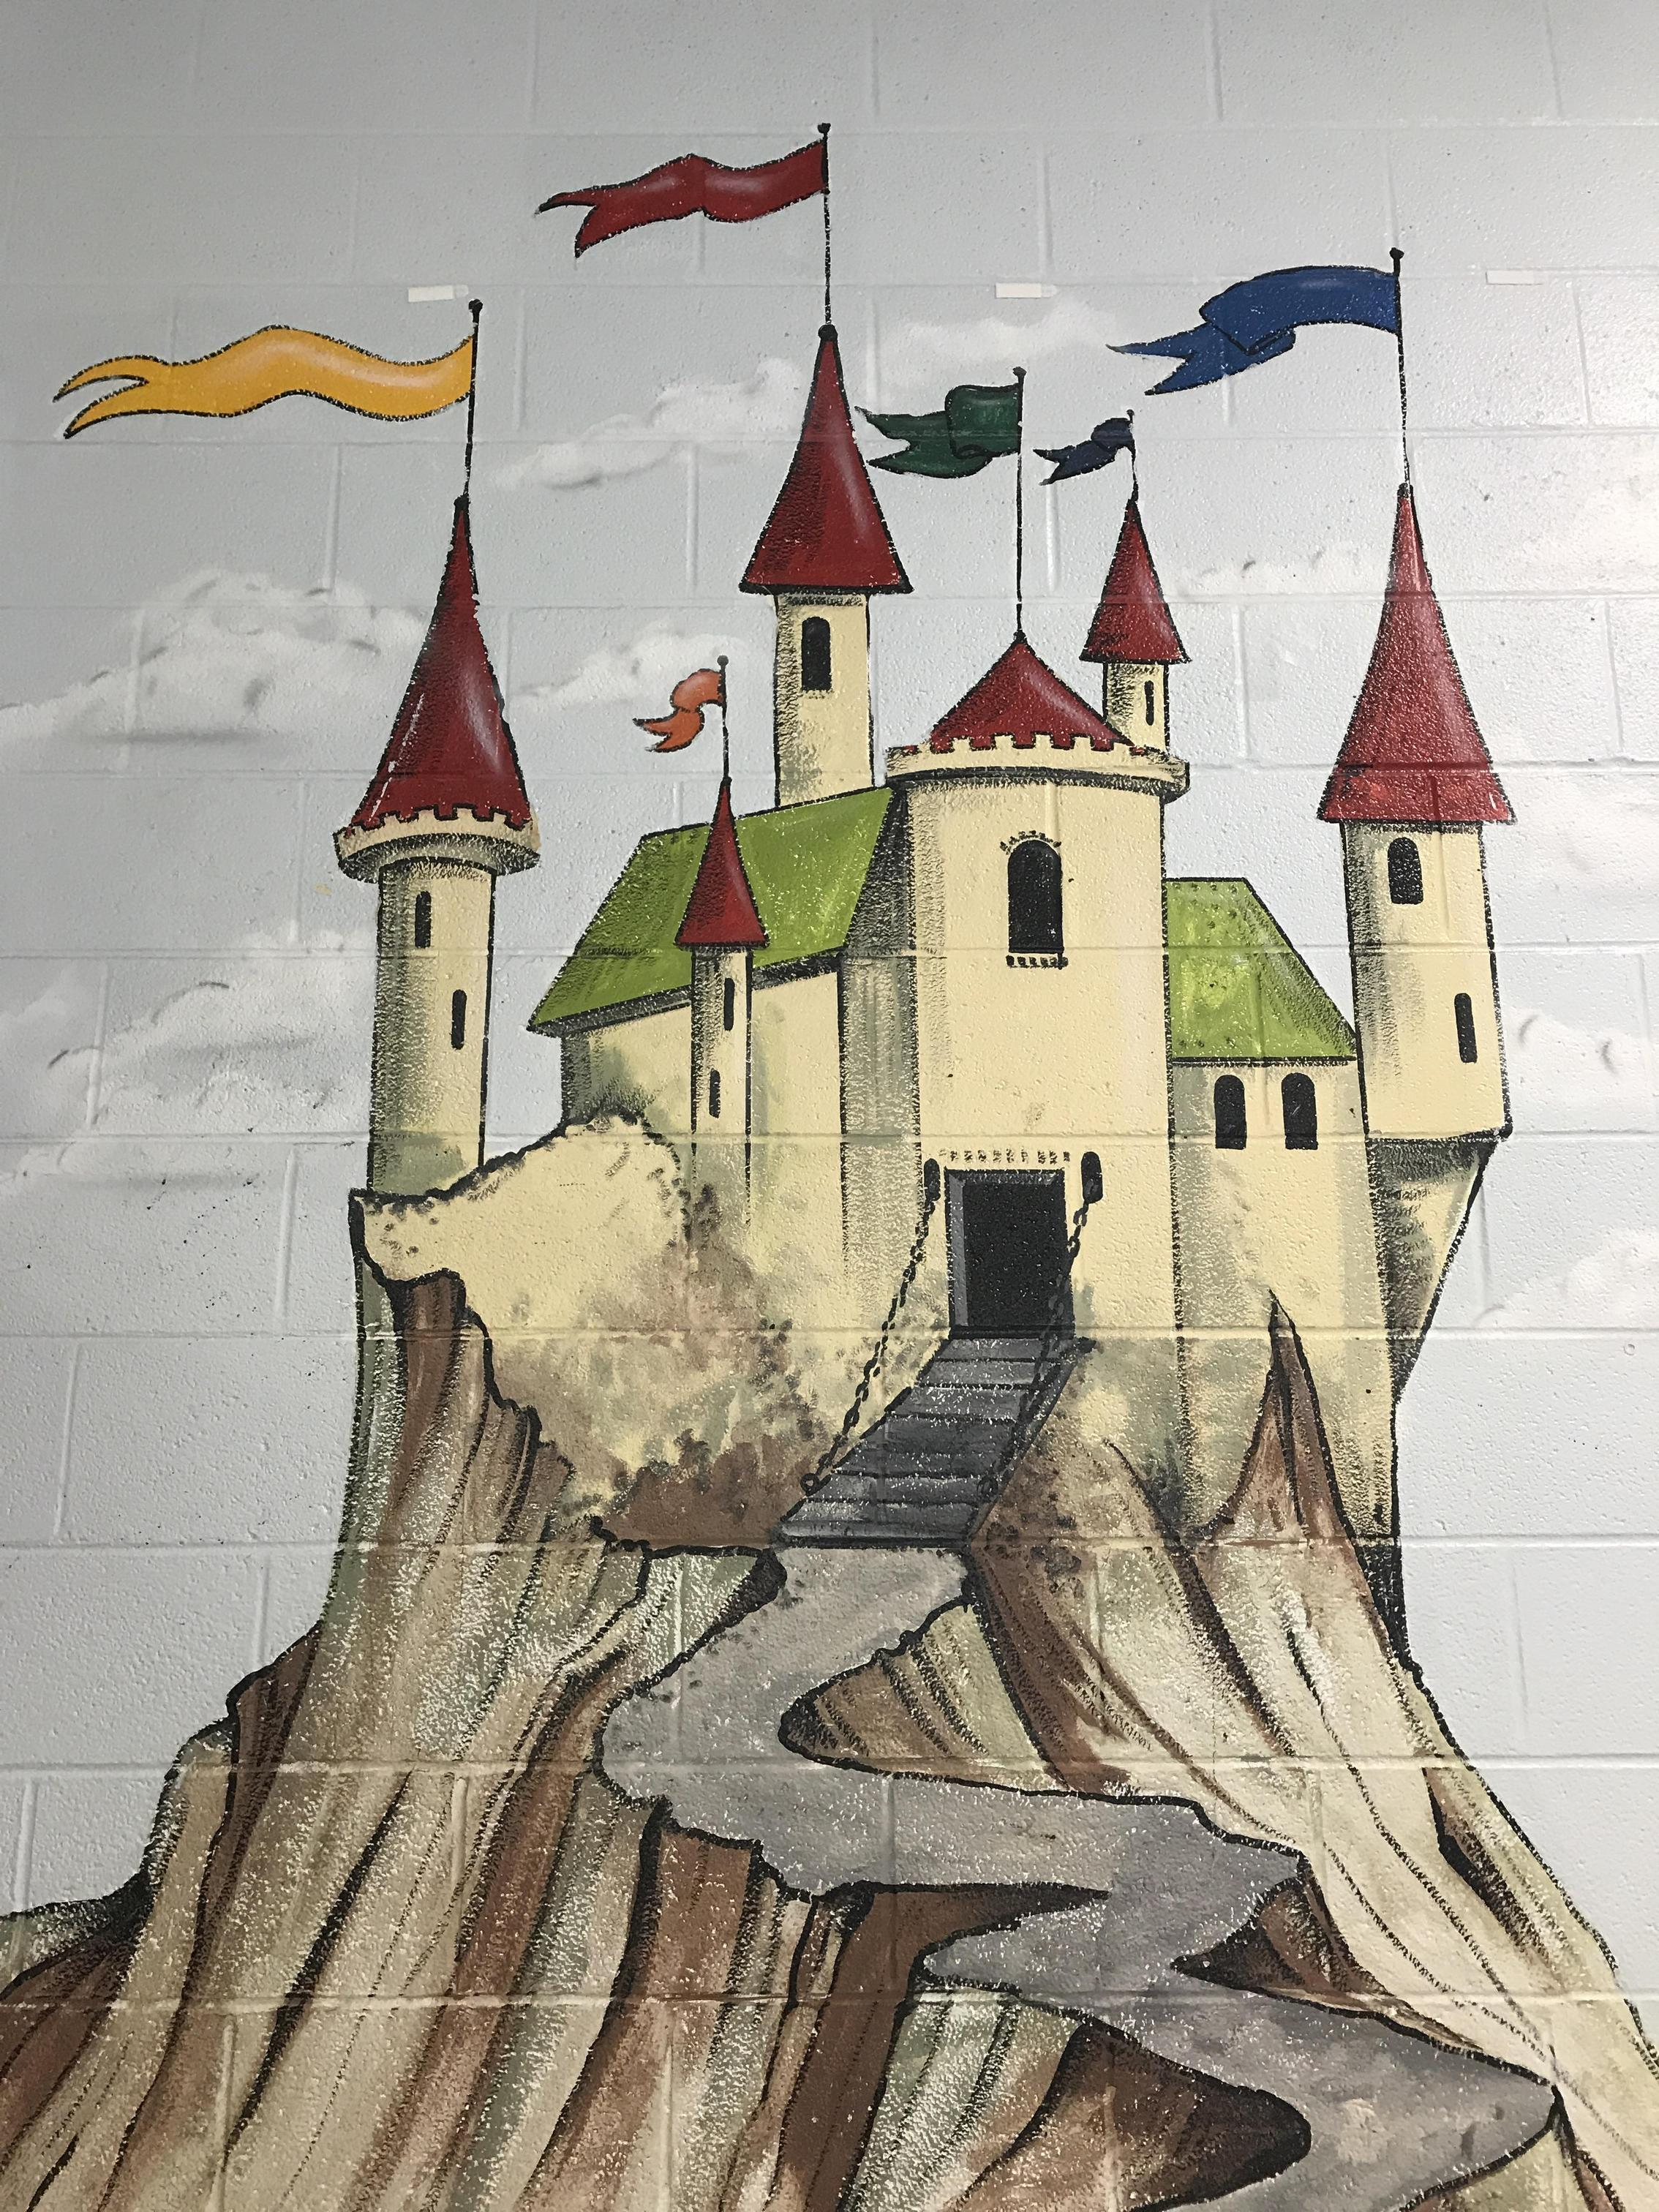 Mural of castle on wall